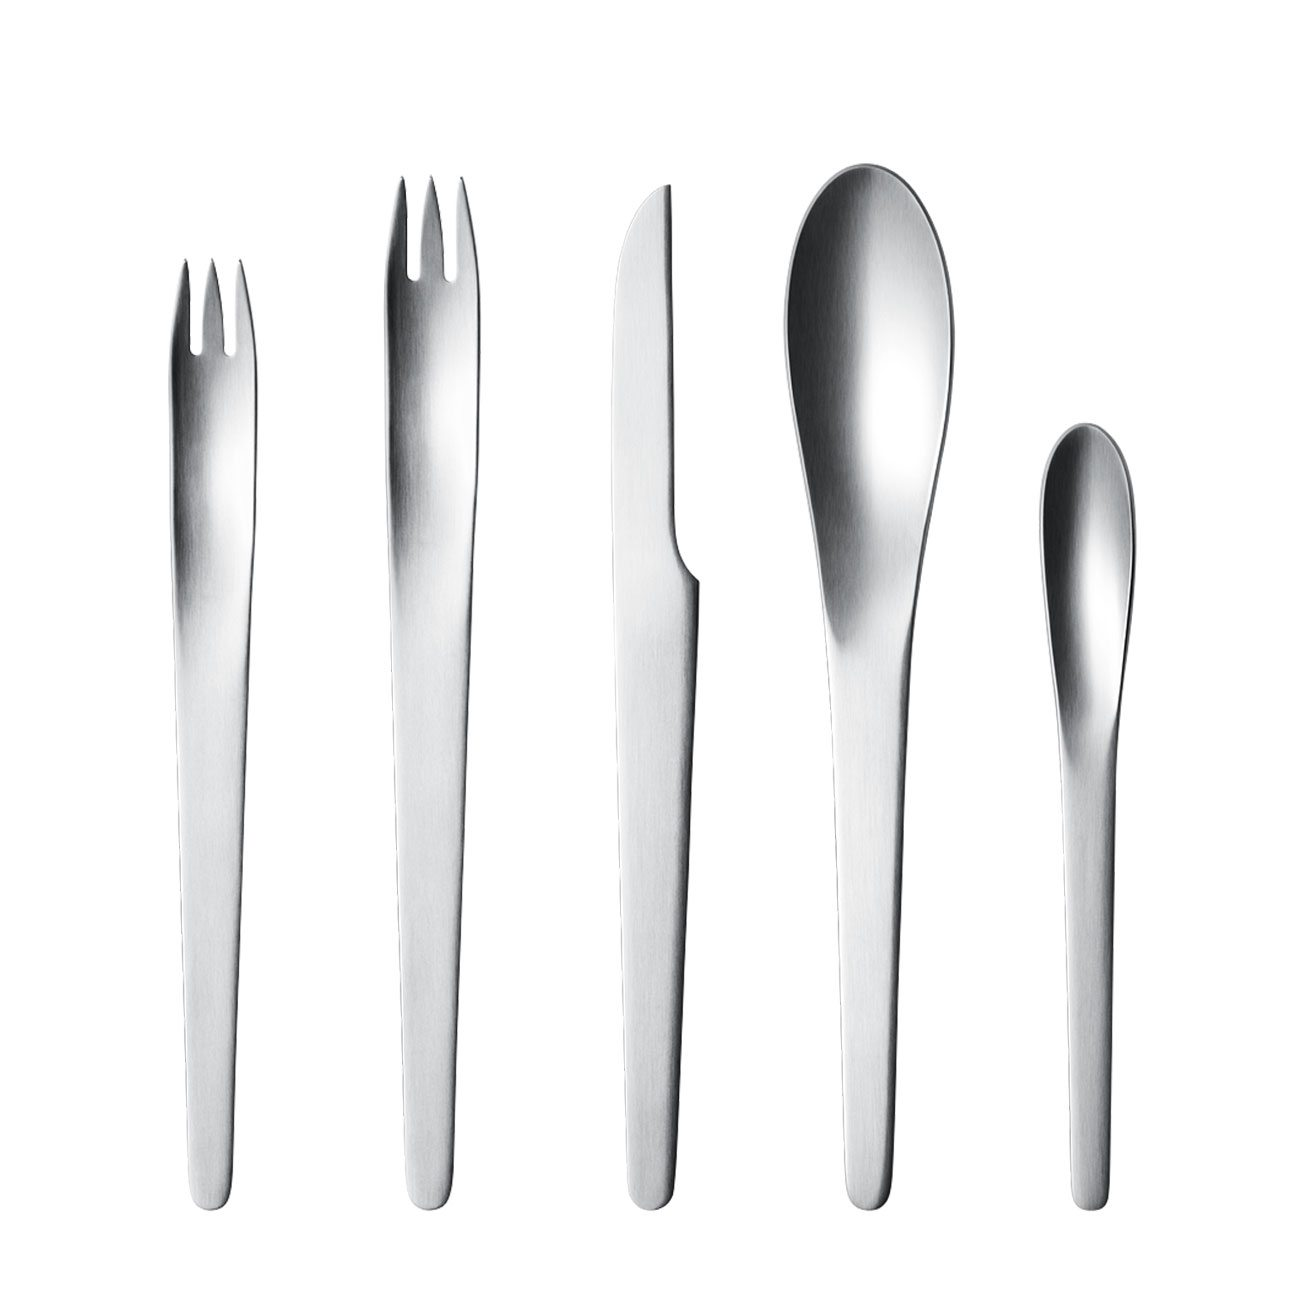 George Jensen Arne Jacobsen Stainless Steel Flatware Collection